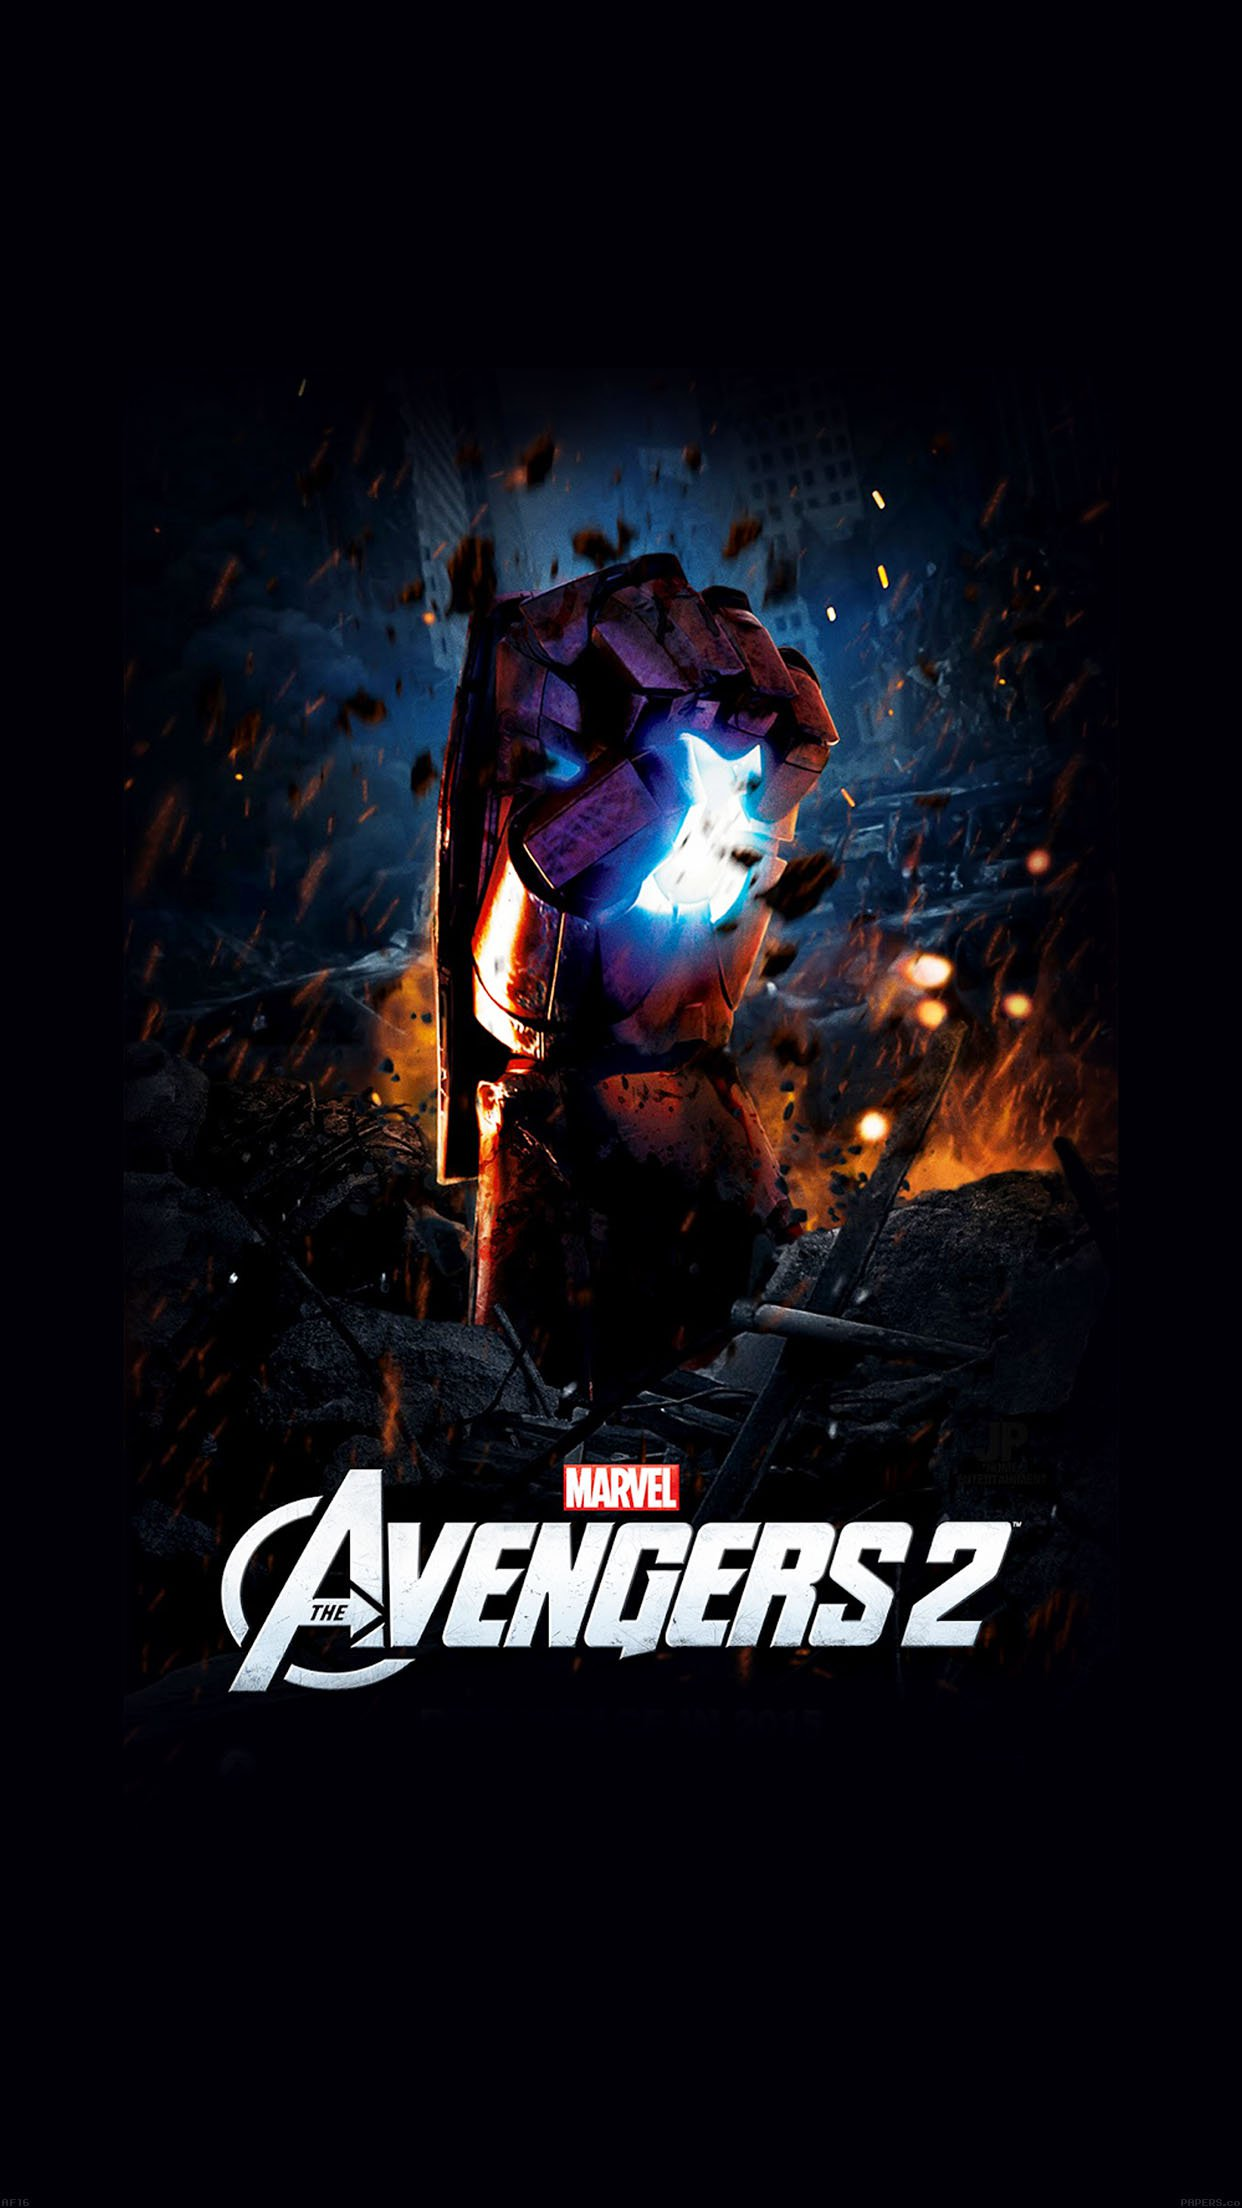 How To Download Wallpaper For Iphone 6 Avengers Wallpapers For Iphone Ipad And Desktop